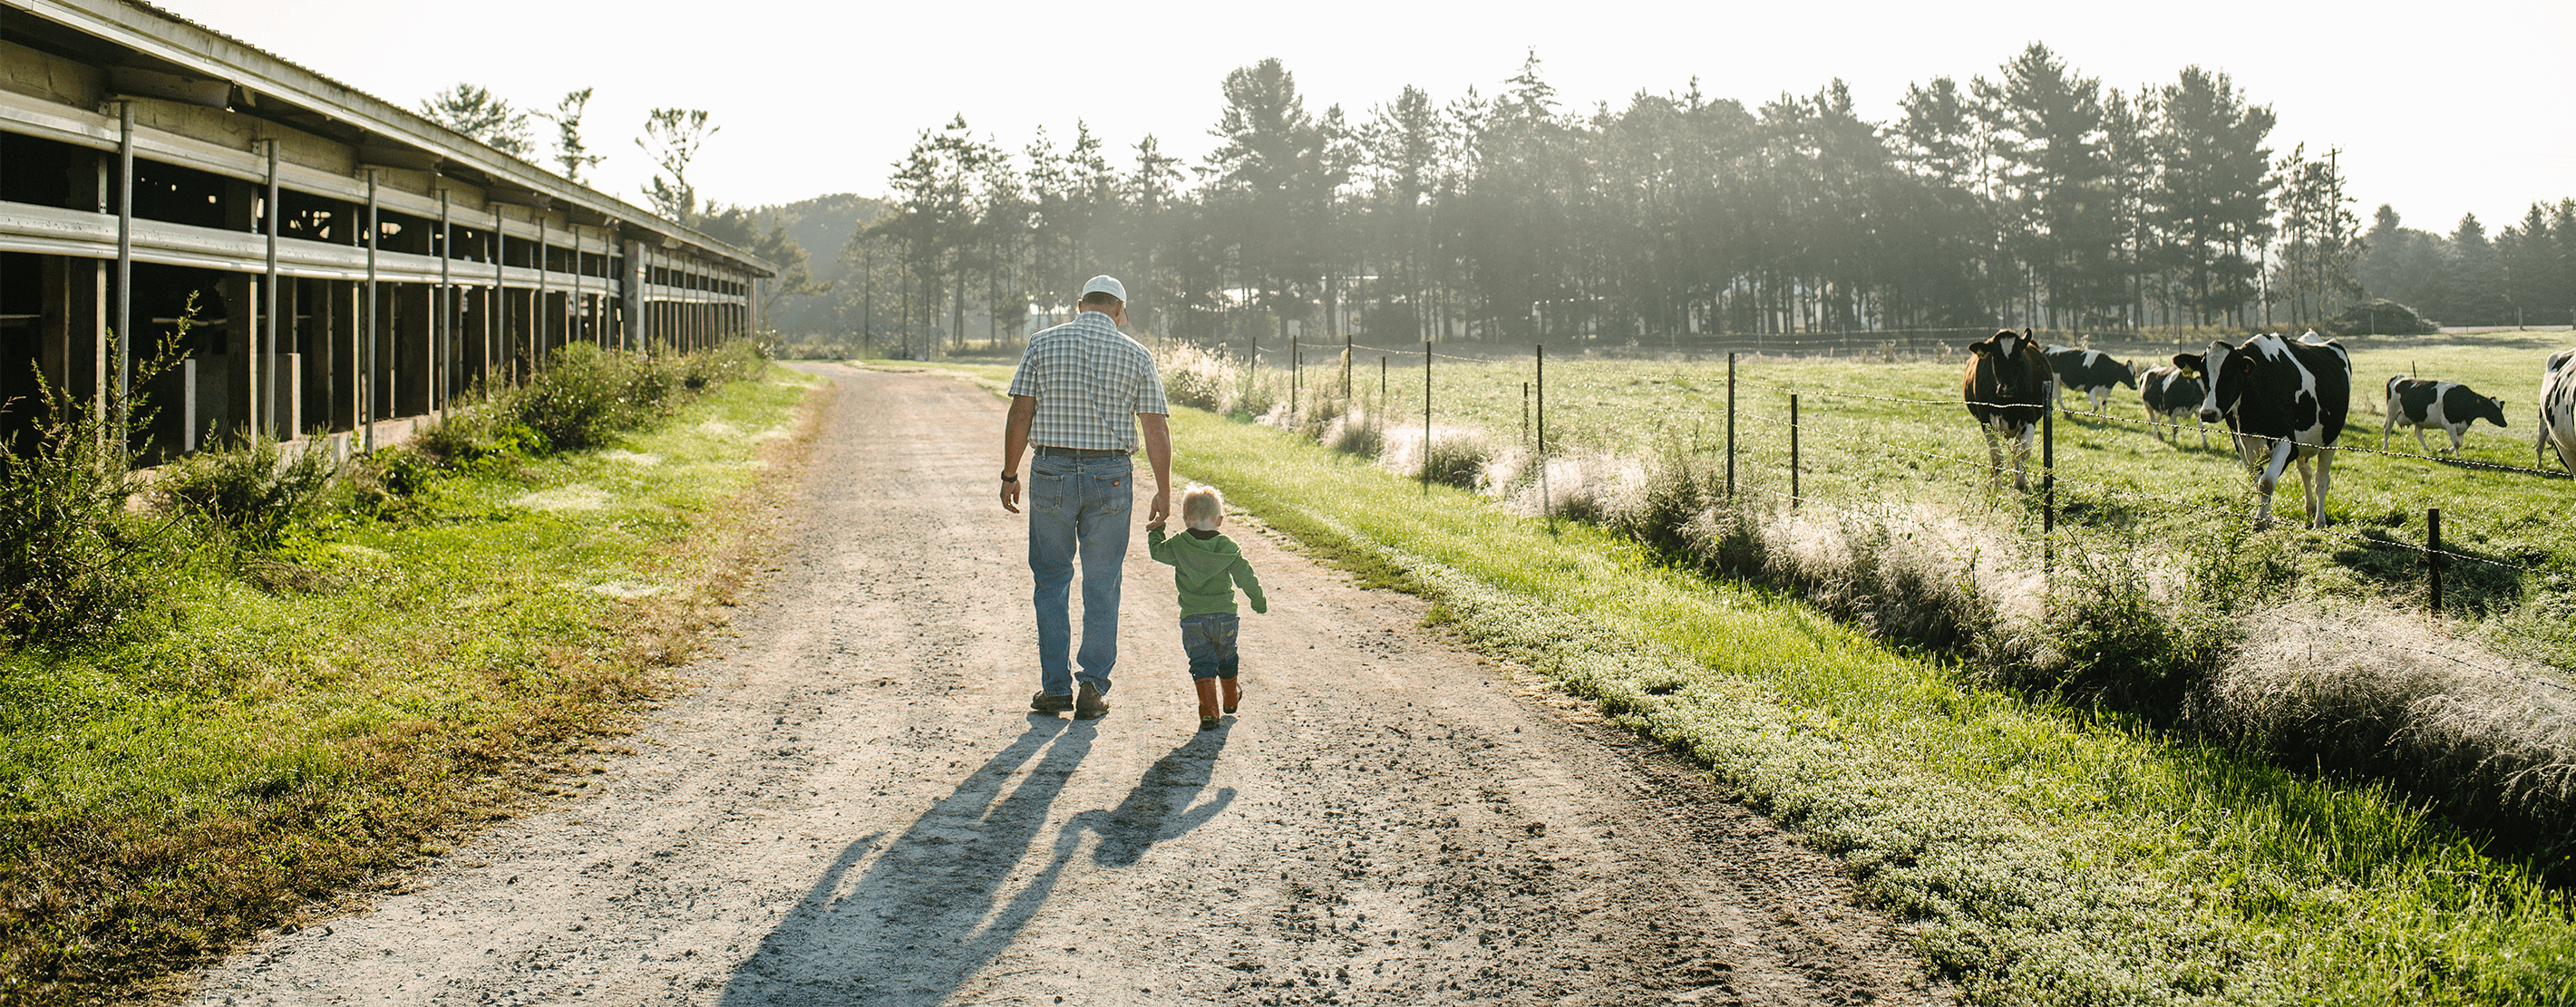 Pete Kappelman Walking On His Farm With His Grandson